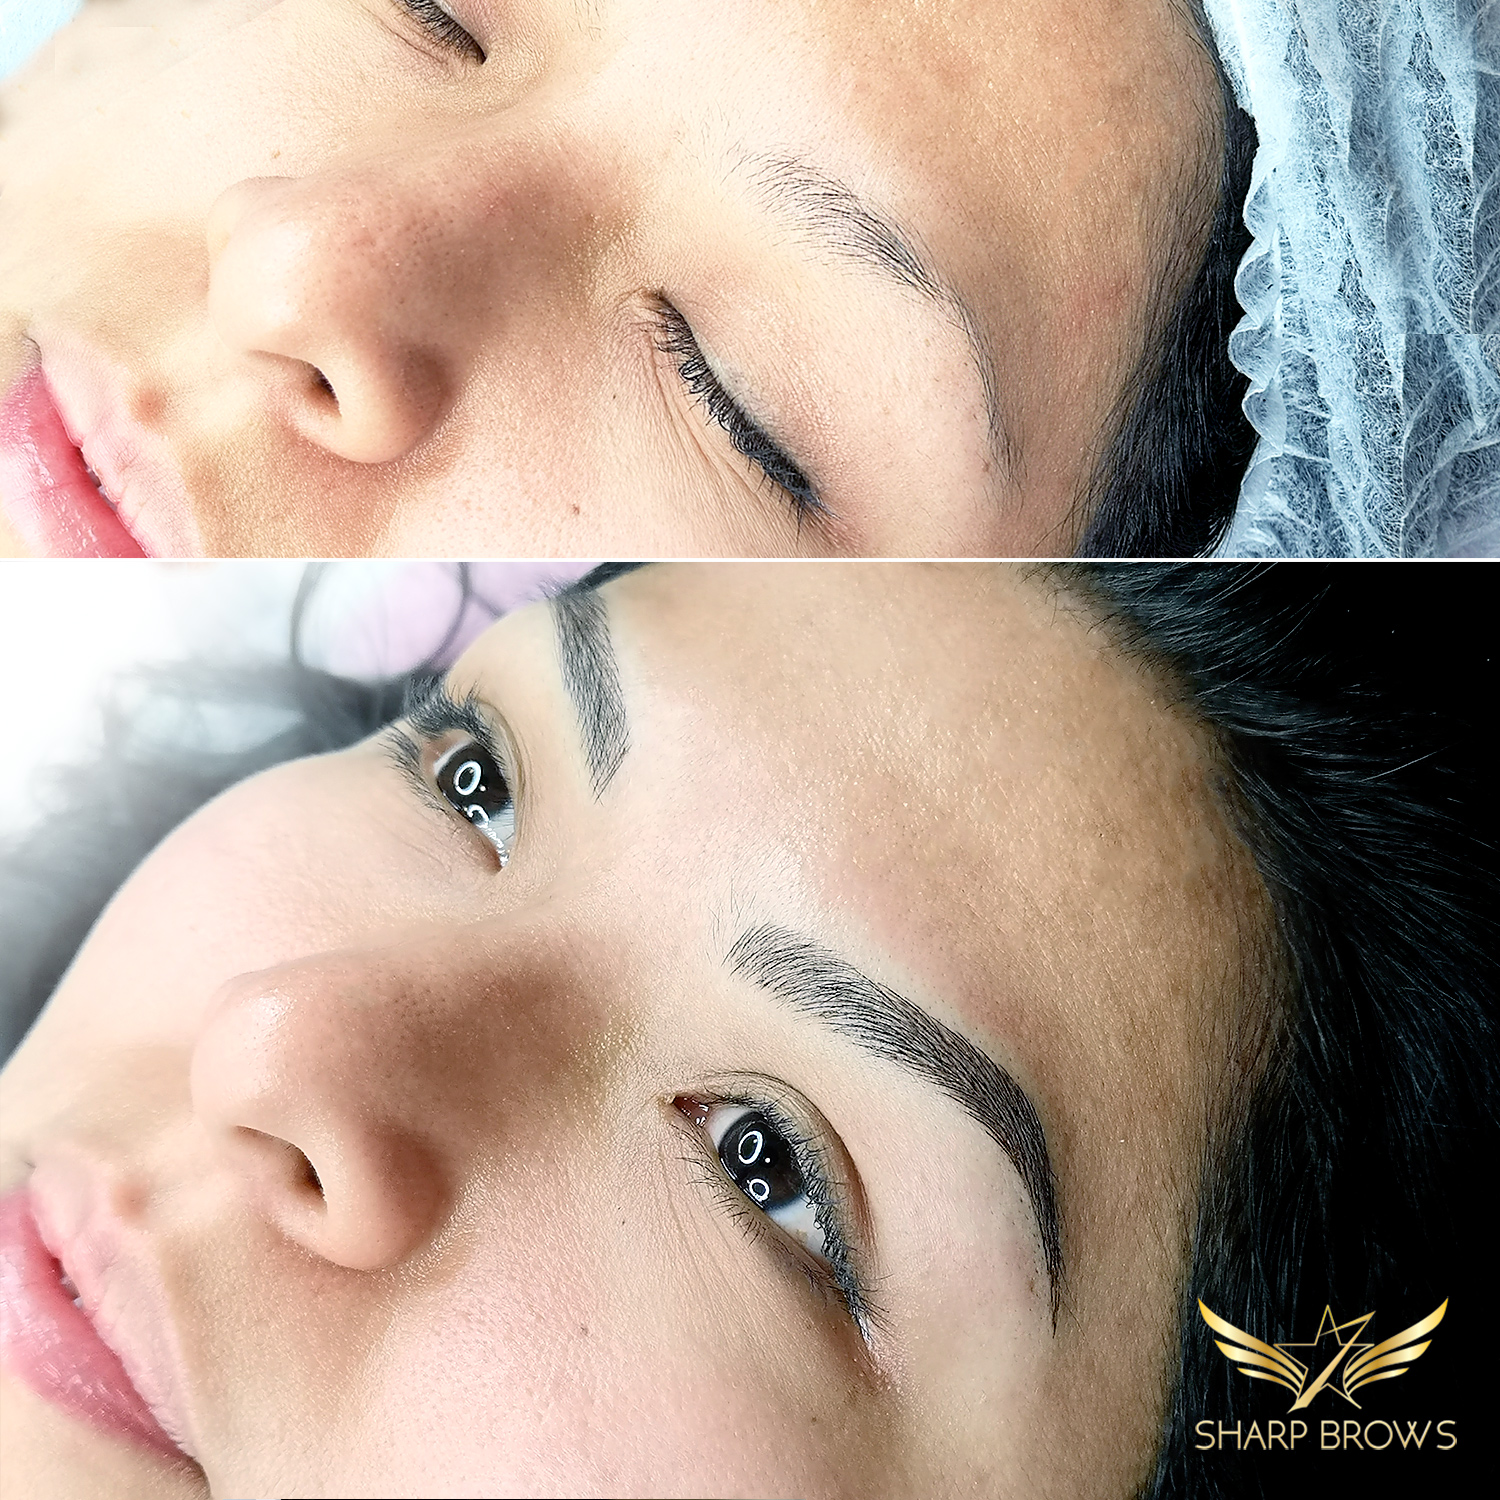 Light microblading. This beautiful lady became even more beautiful with new brows.